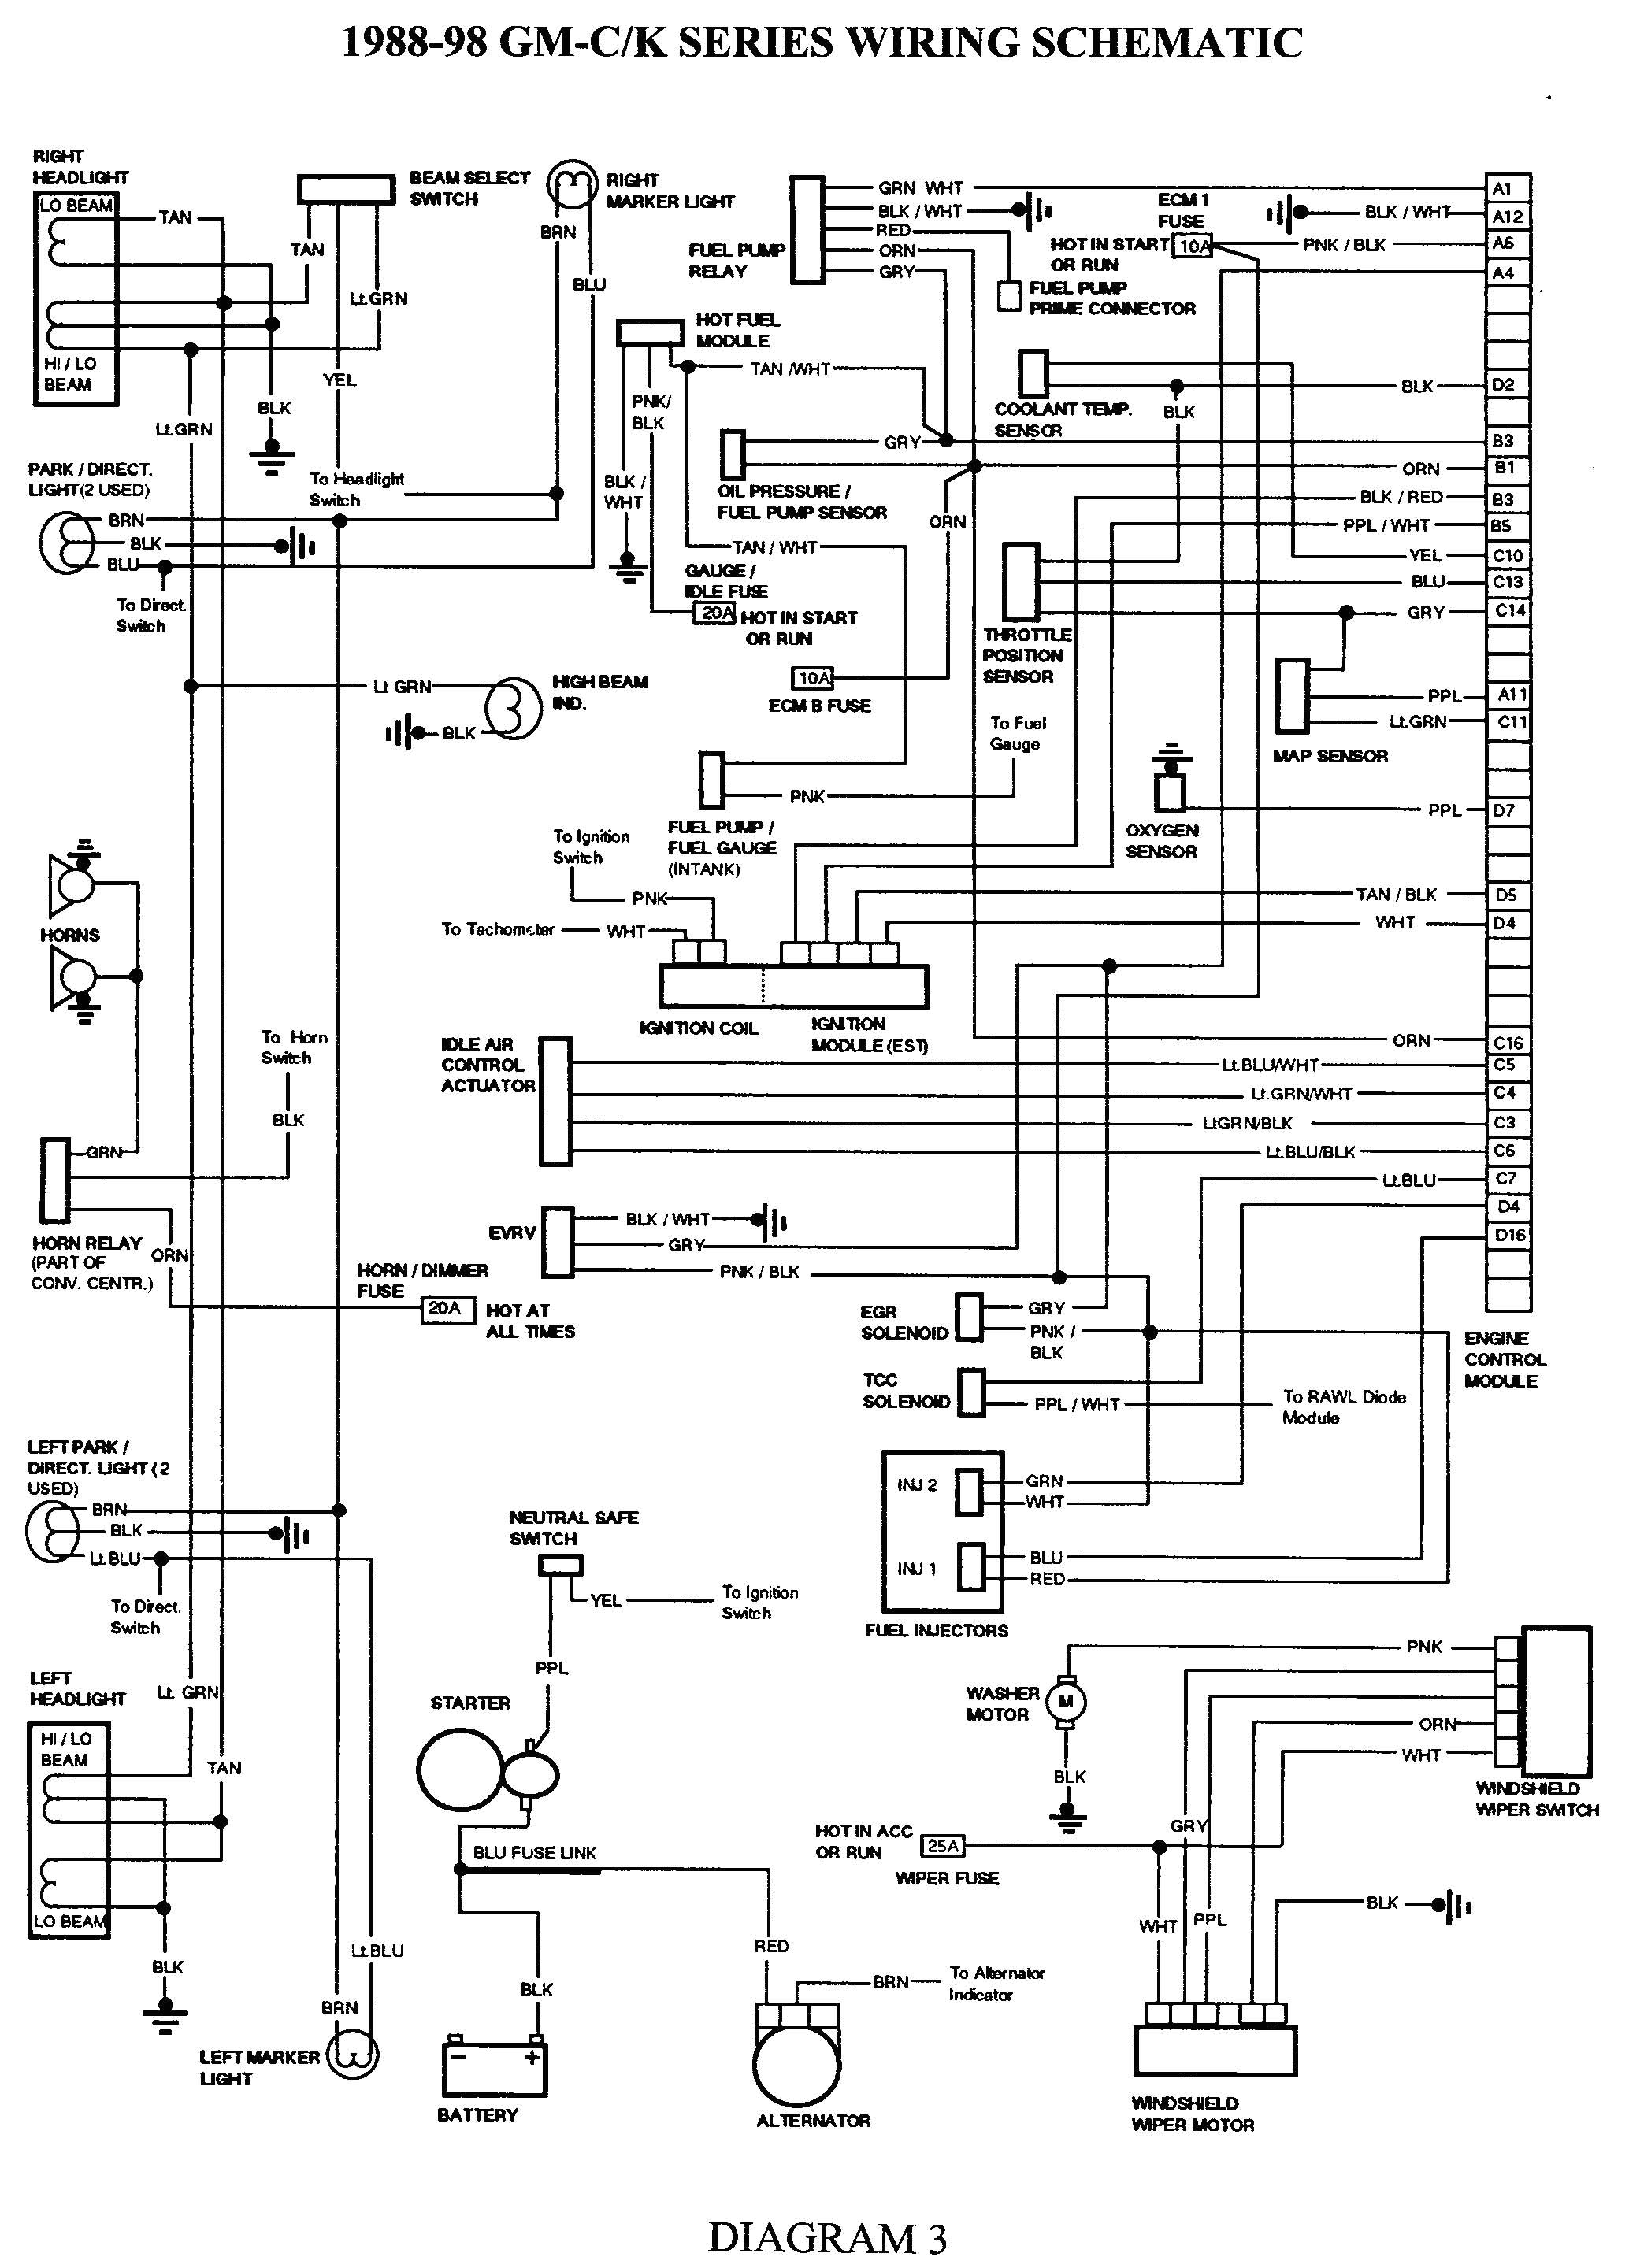 20flowcharts 0l engine cam position wiring chevy diagram diagnostic flow chart for code p0340 on jpg